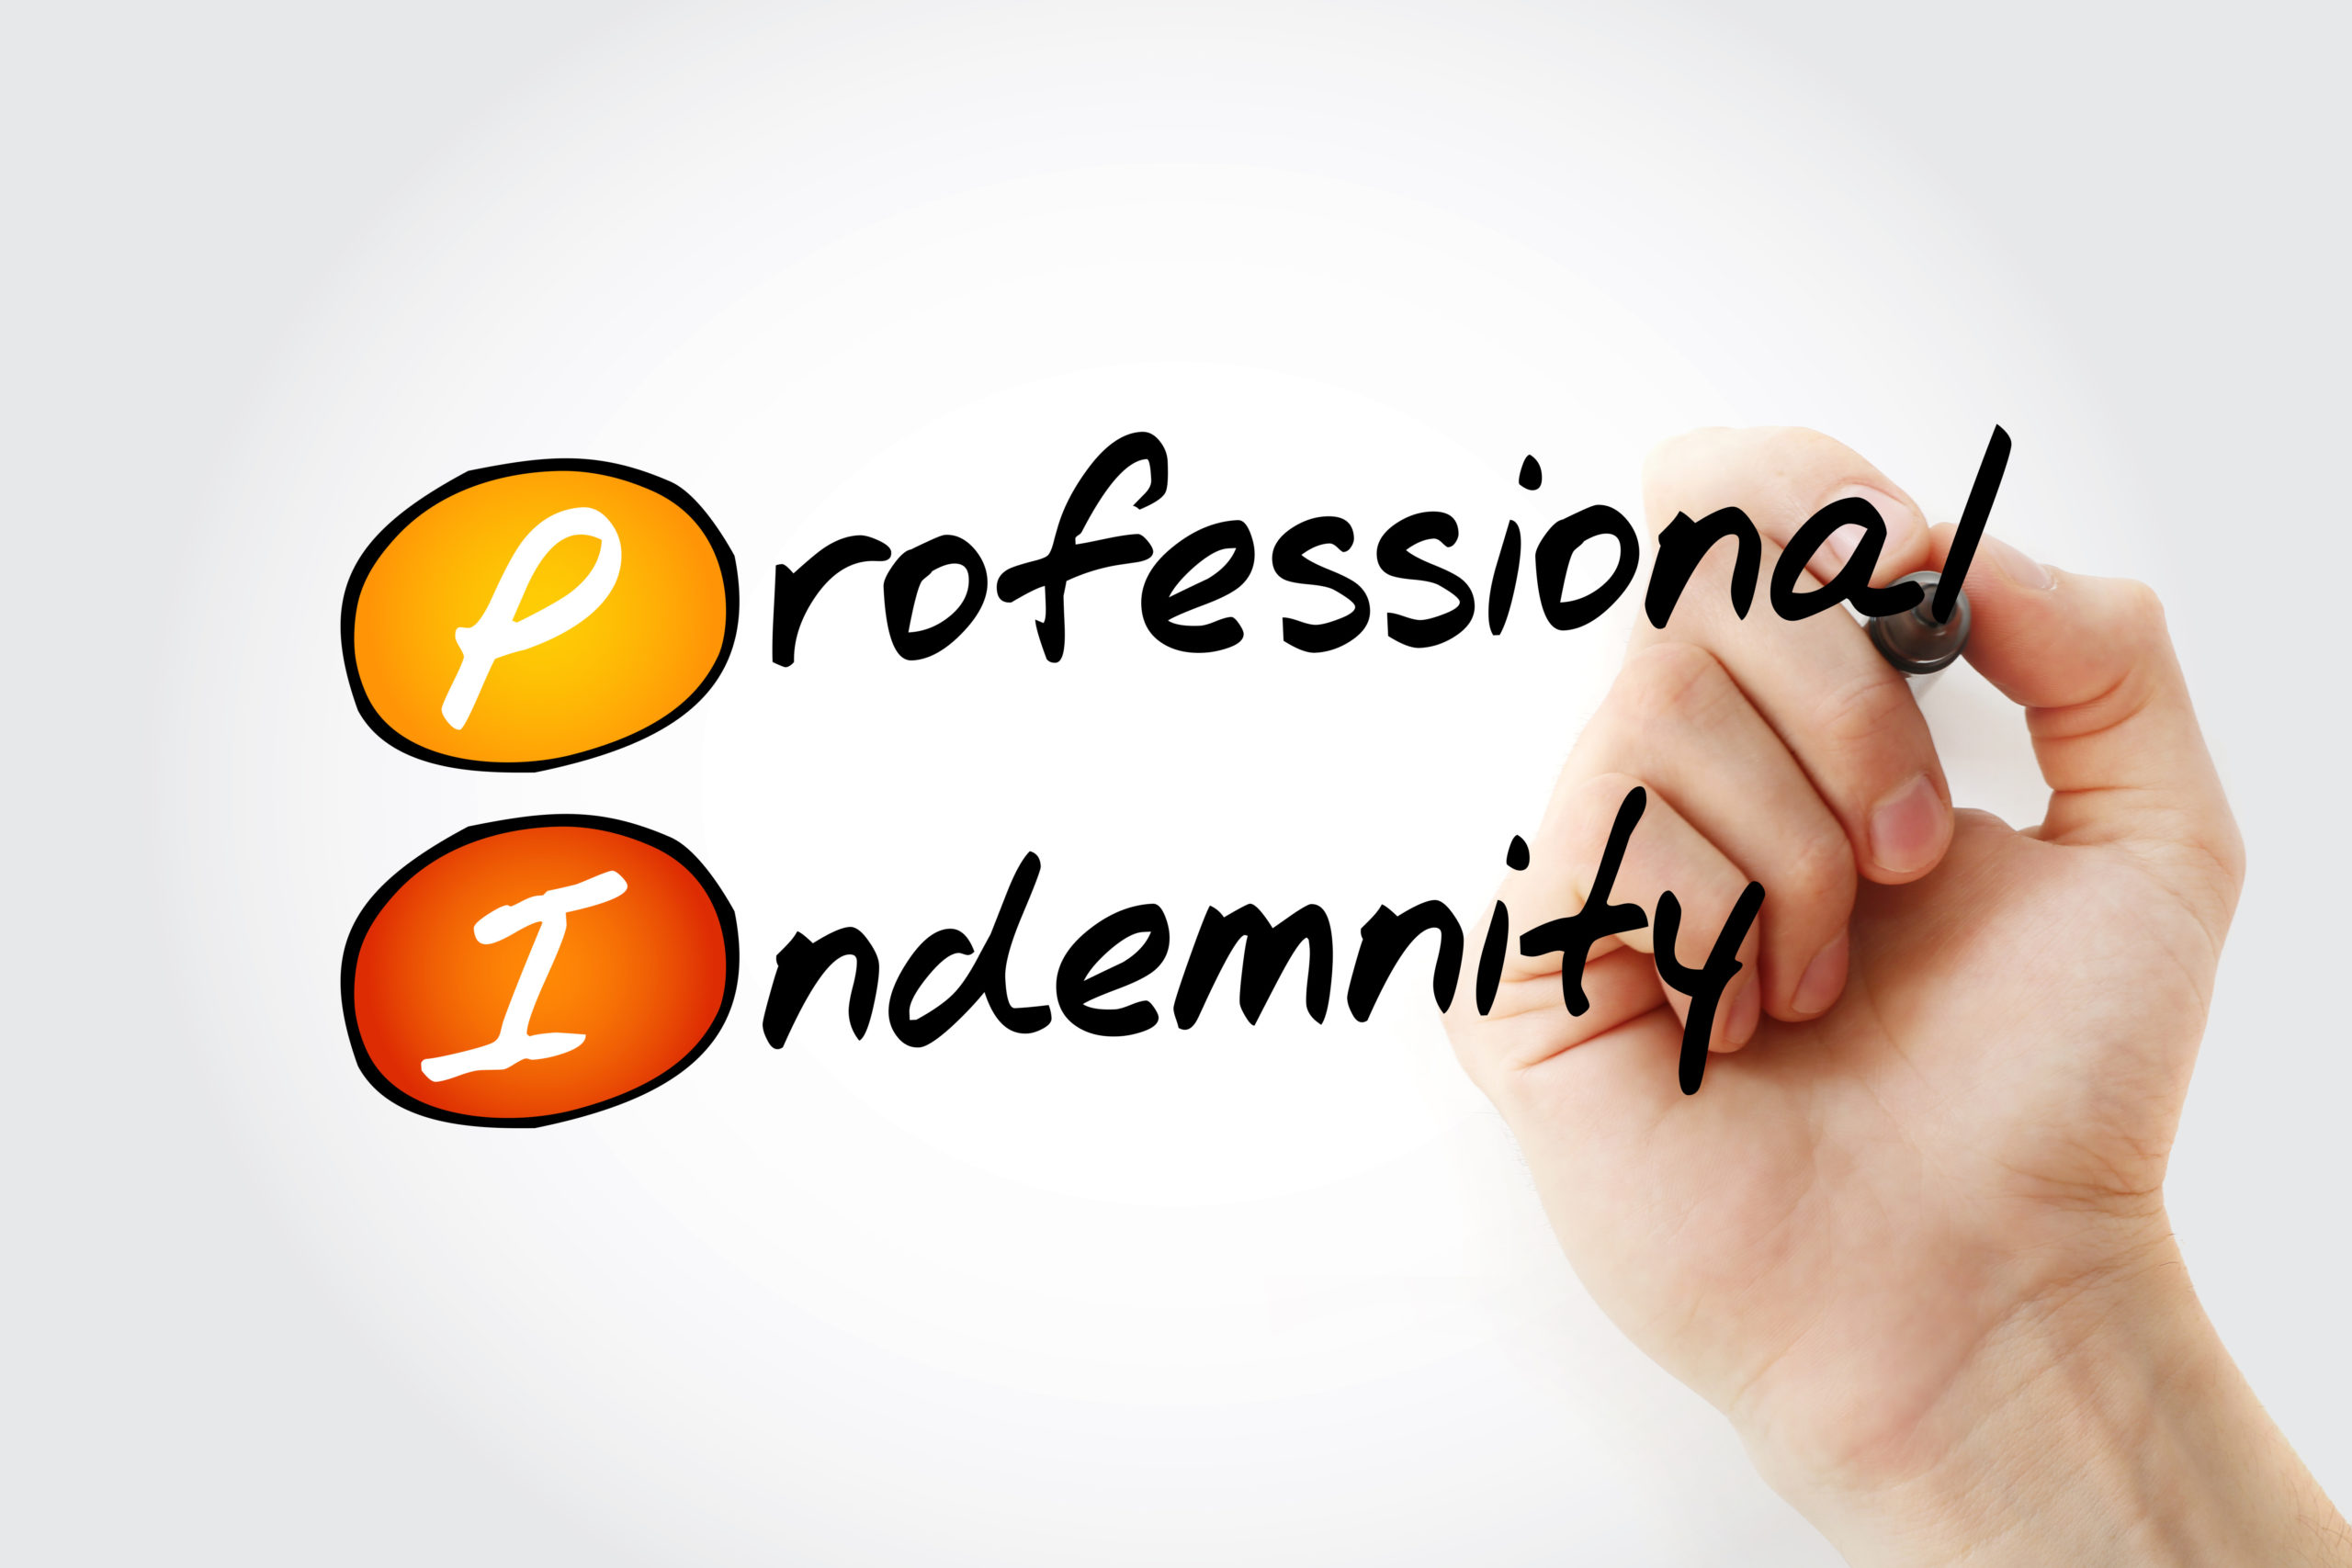 Professional Indemnity Hand Written